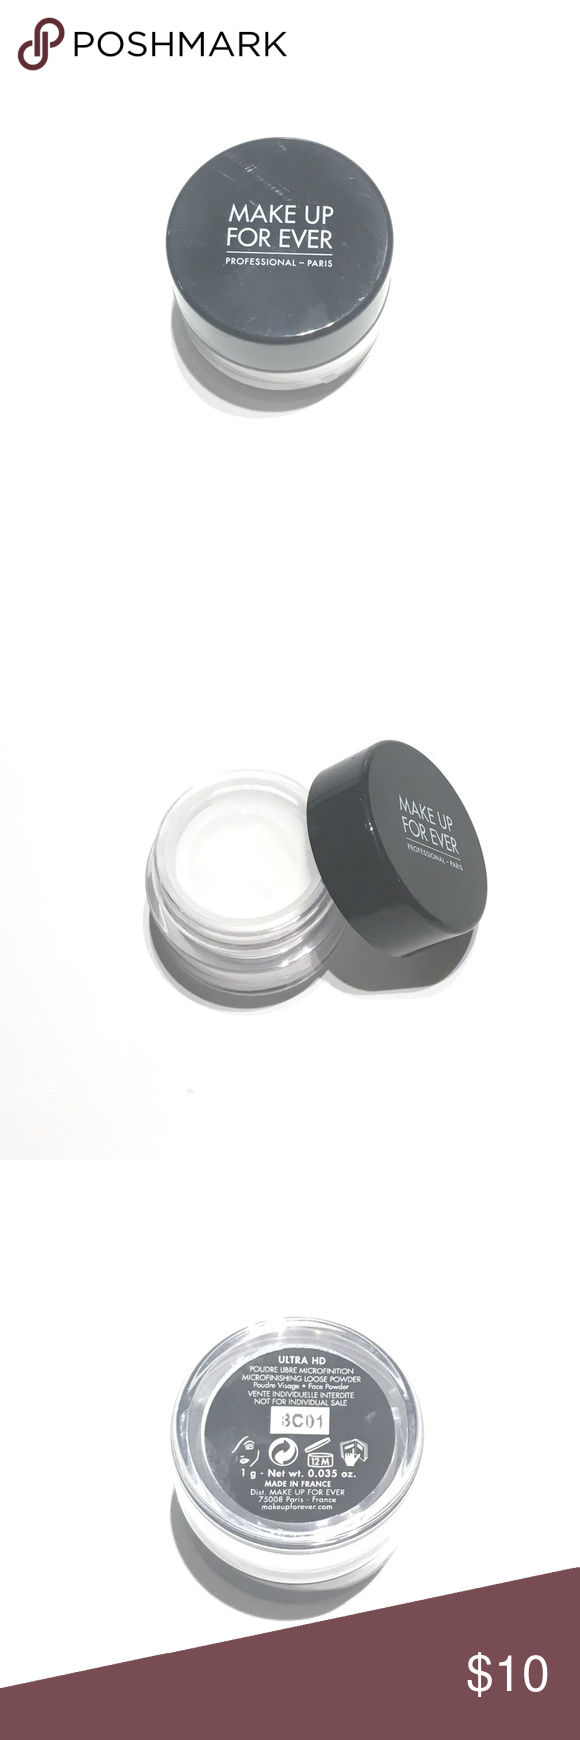 MakeUp ForEver Loose Powder Brand New || Make Up For Ever Ultra HD Microfinishing Loose